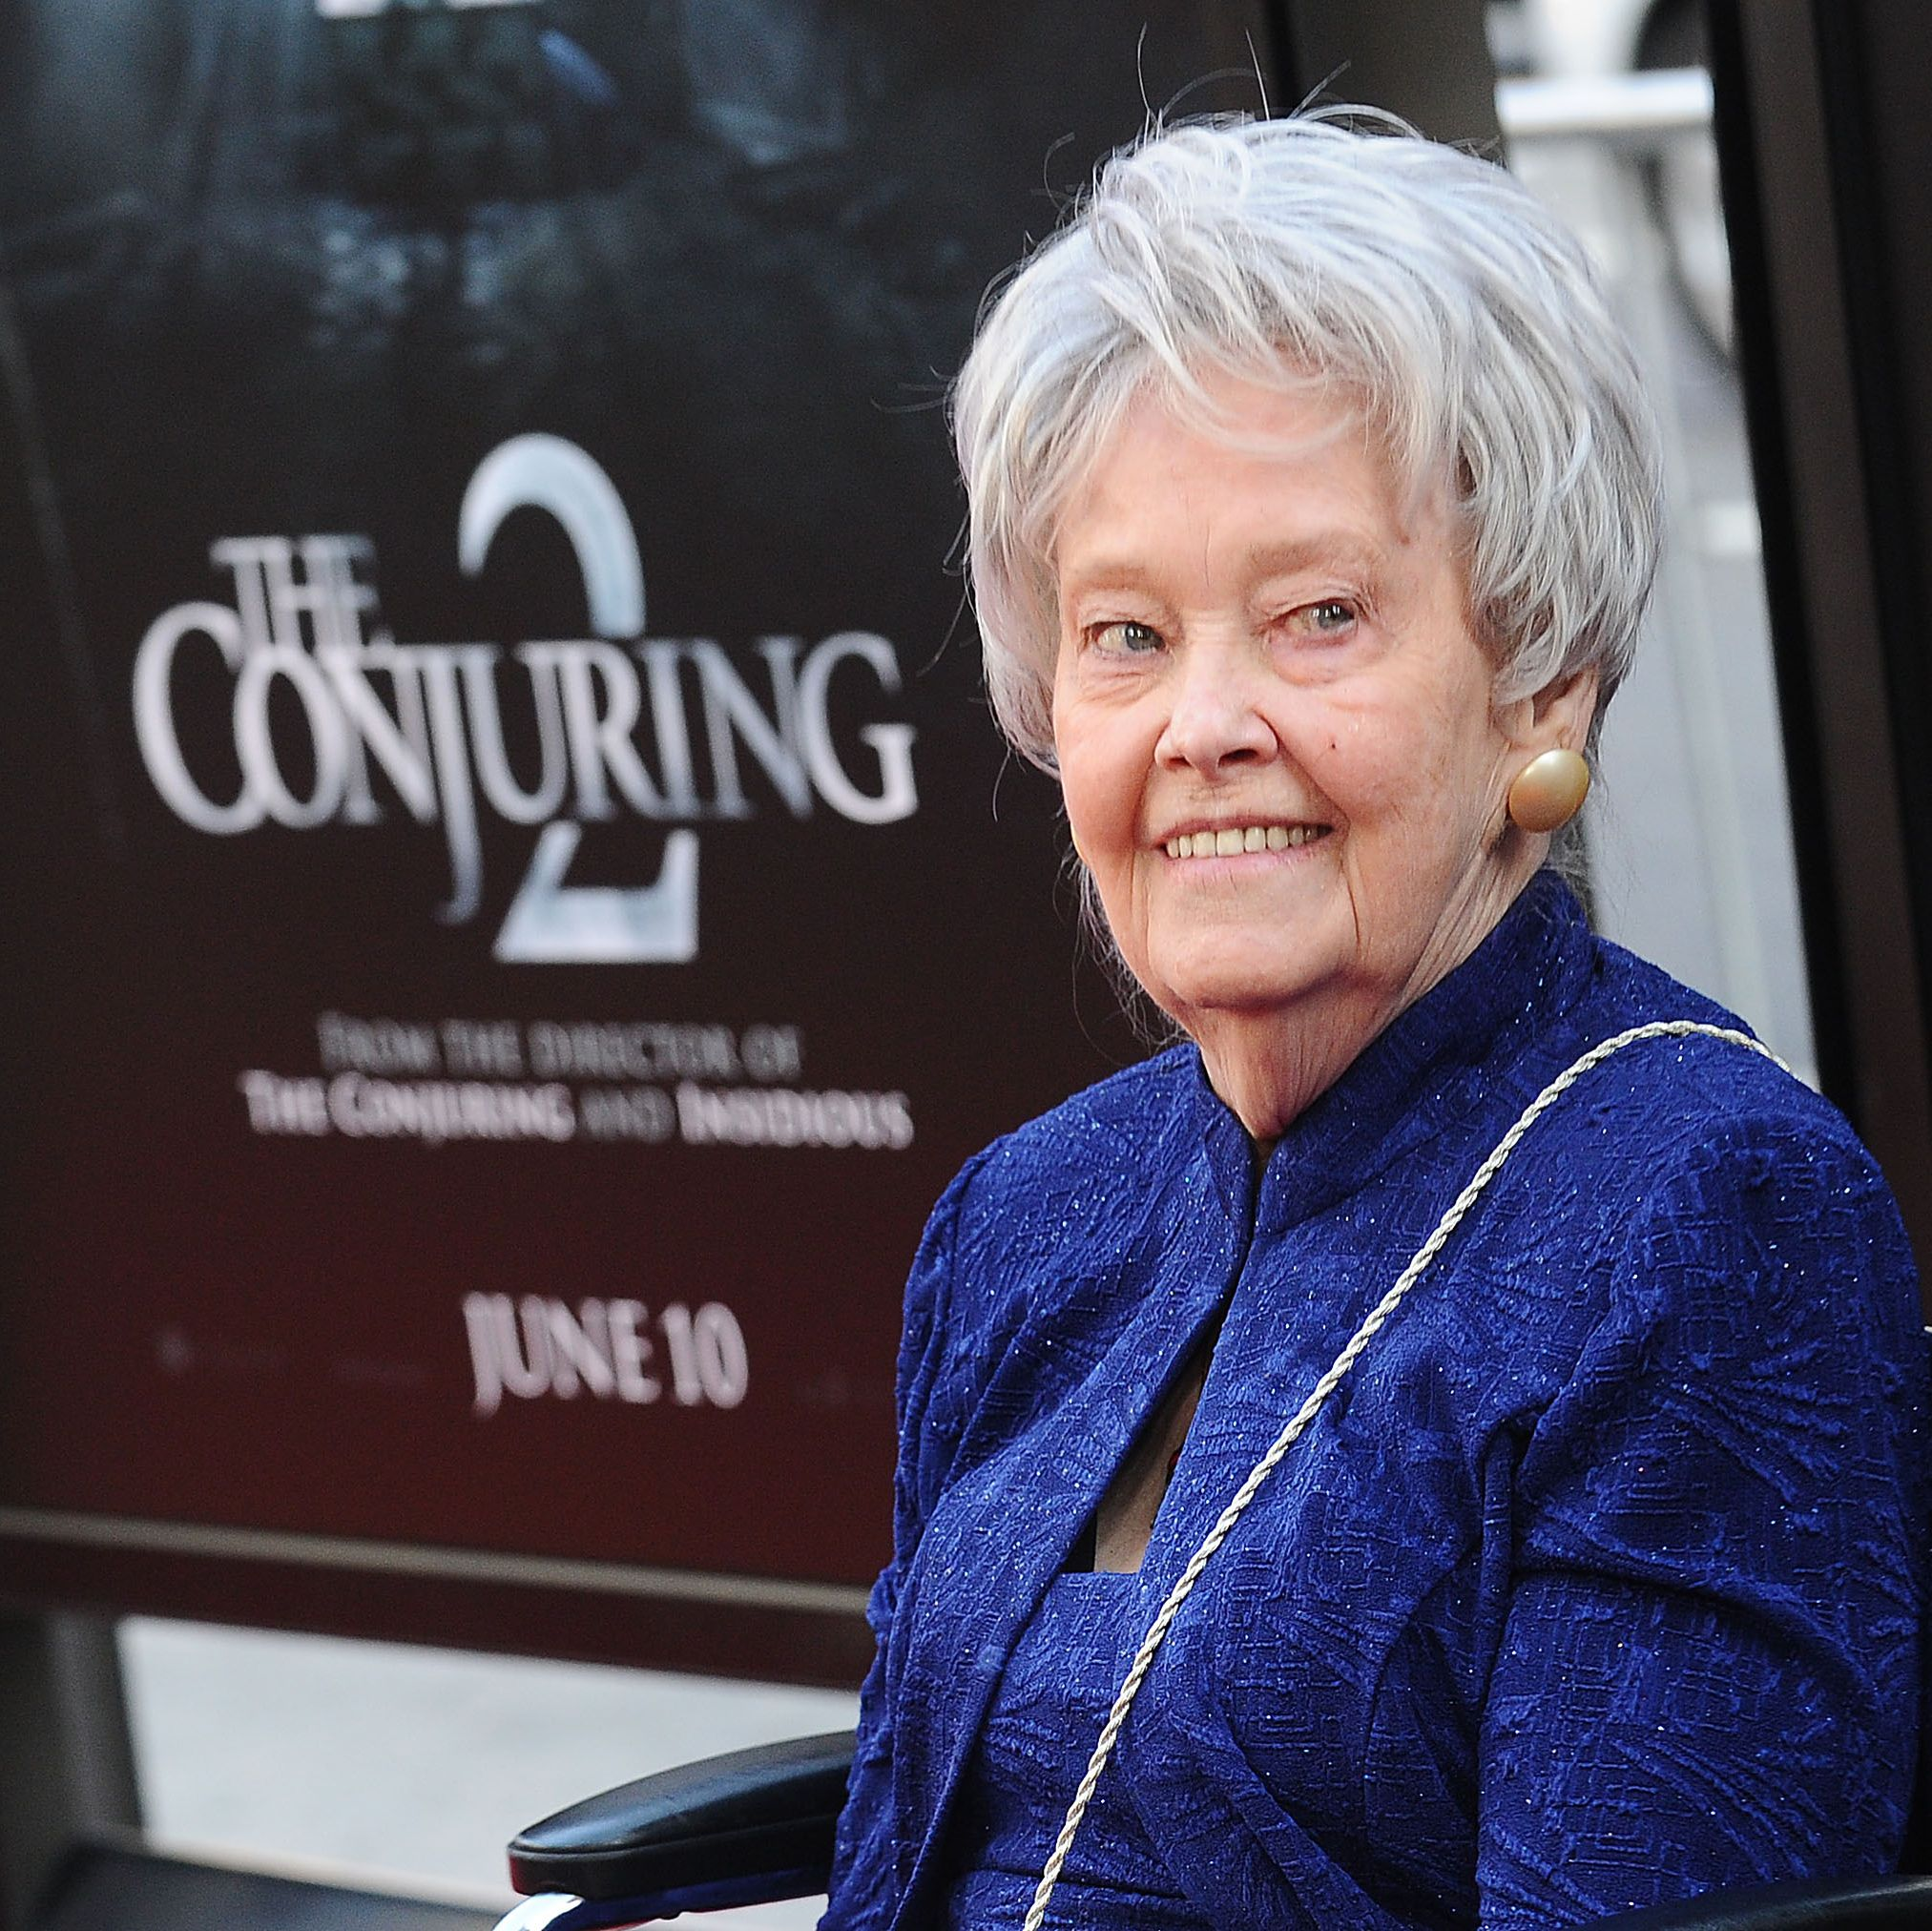 Real life Lorraine Warren from The Conjuring movies dies